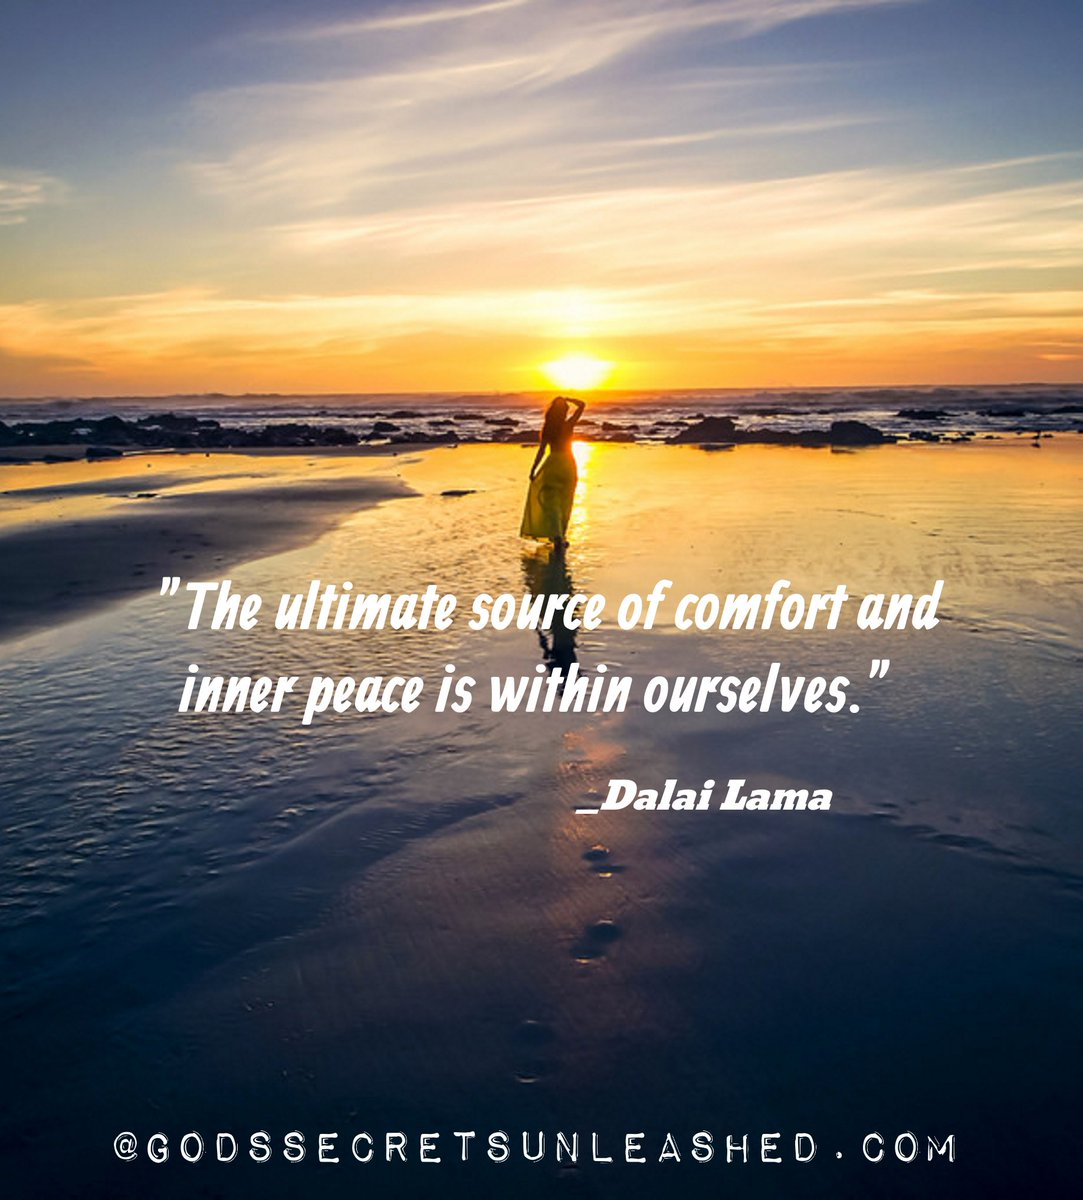 &quot;The ultimate source of comfort and peace is within ourselves.&quot; _Dalai Lama #comfort #peace #inner #Source #consciousness #awareness #Light<br>http://pic.twitter.com/M6XgkgDVQr